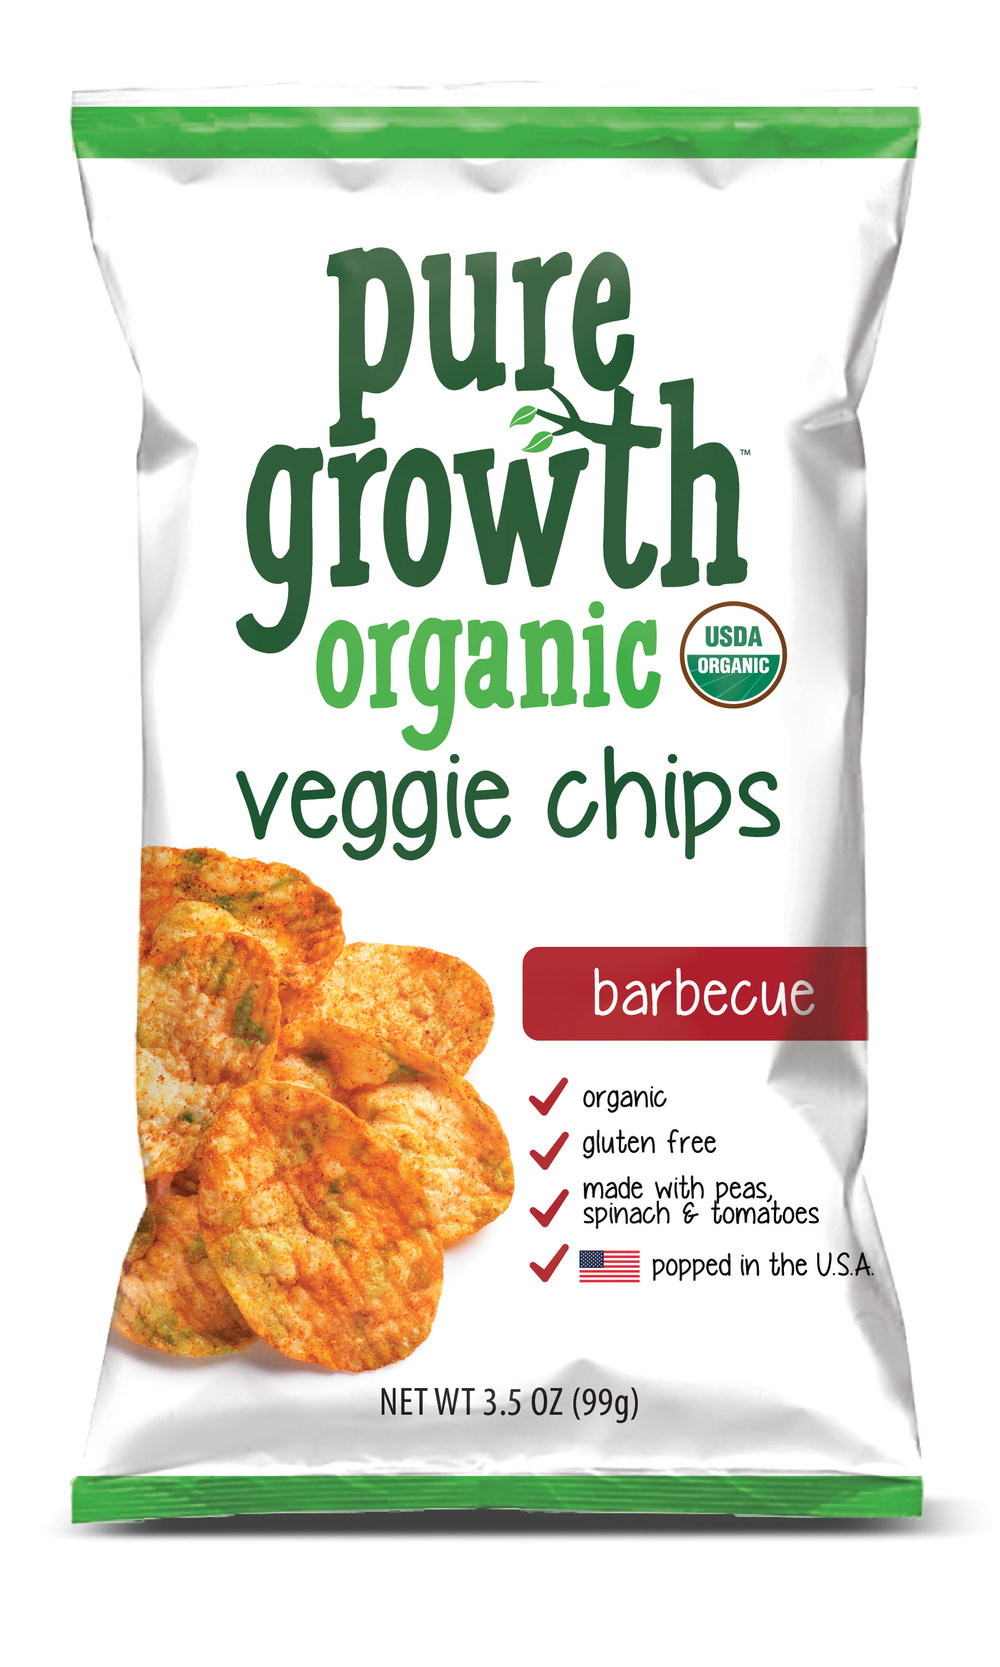 Veggie_Chips_barbecue.jpg